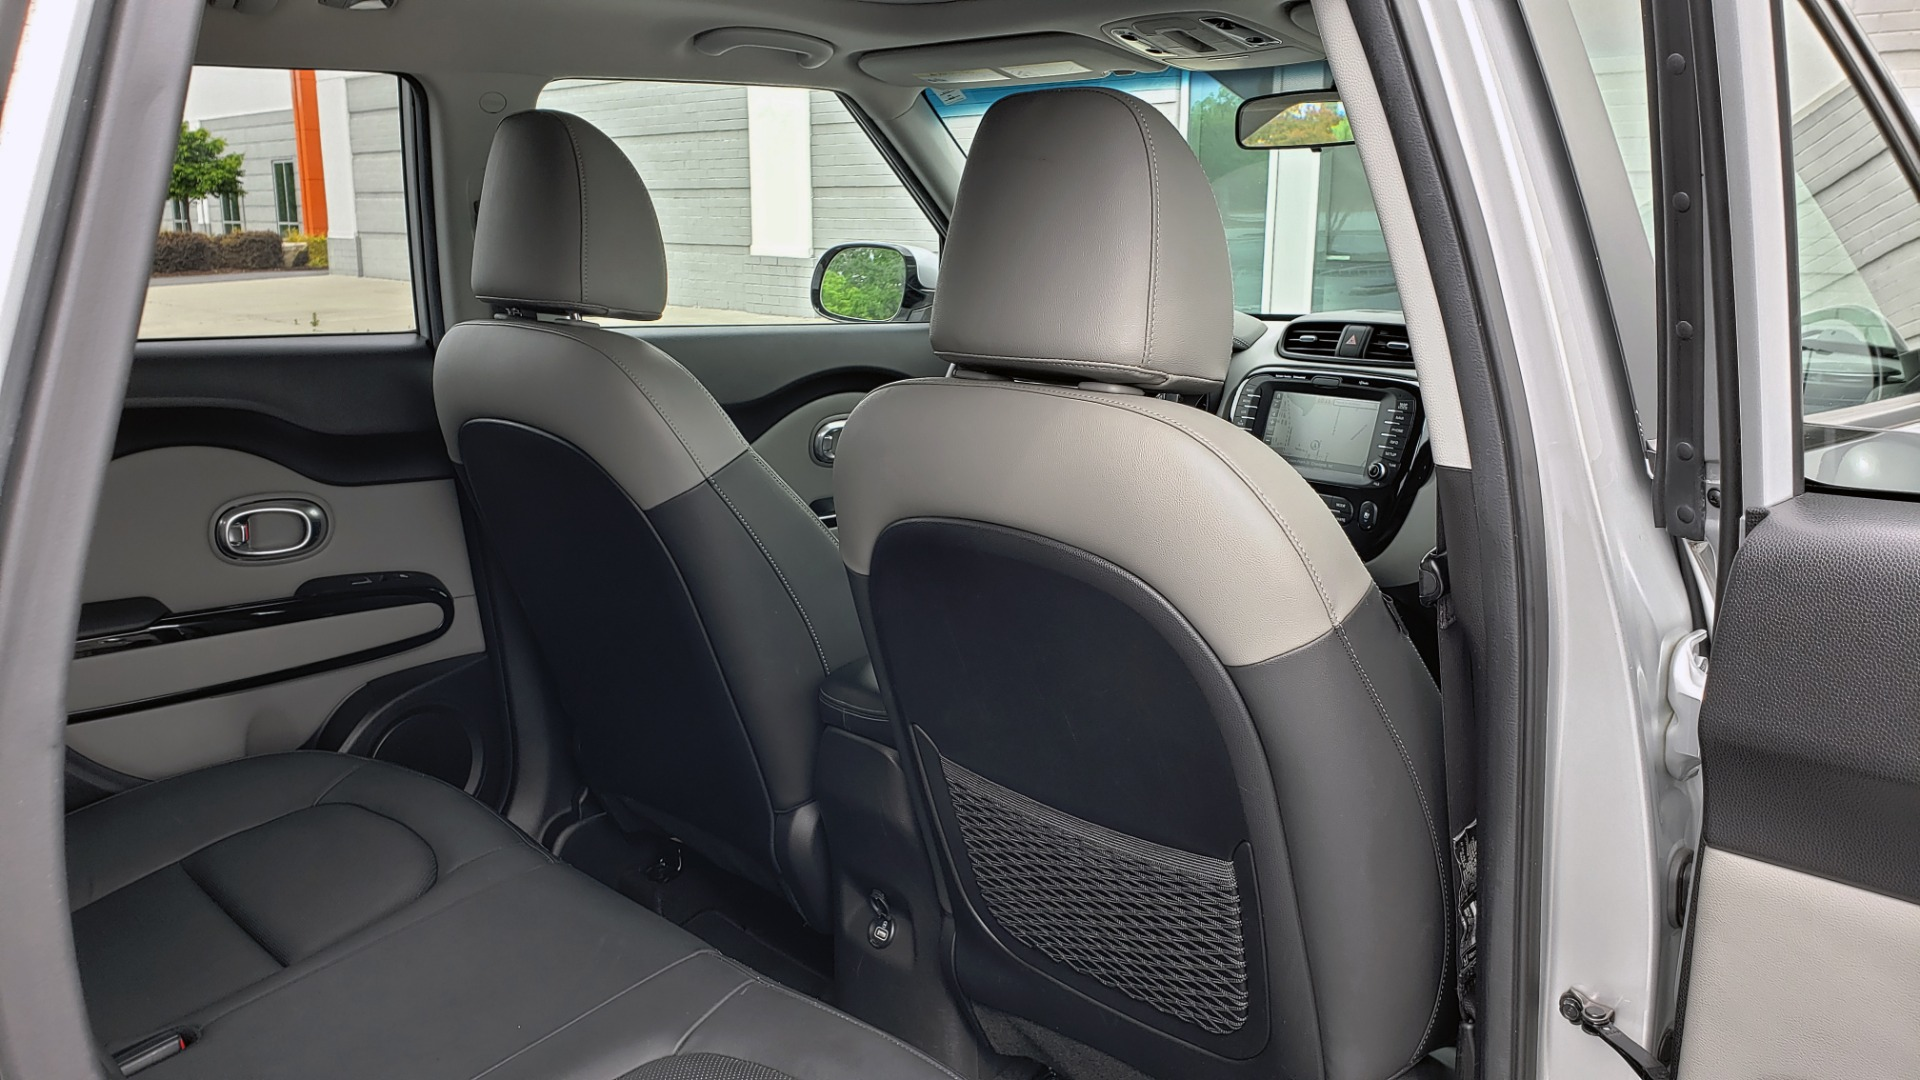 Used 2017 Kia SOUL PLUS / NAV / SUNROOF / LEATHER / HTD STS / REARVIEW for sale $16,995 at Formula Imports in Charlotte NC 28227 68